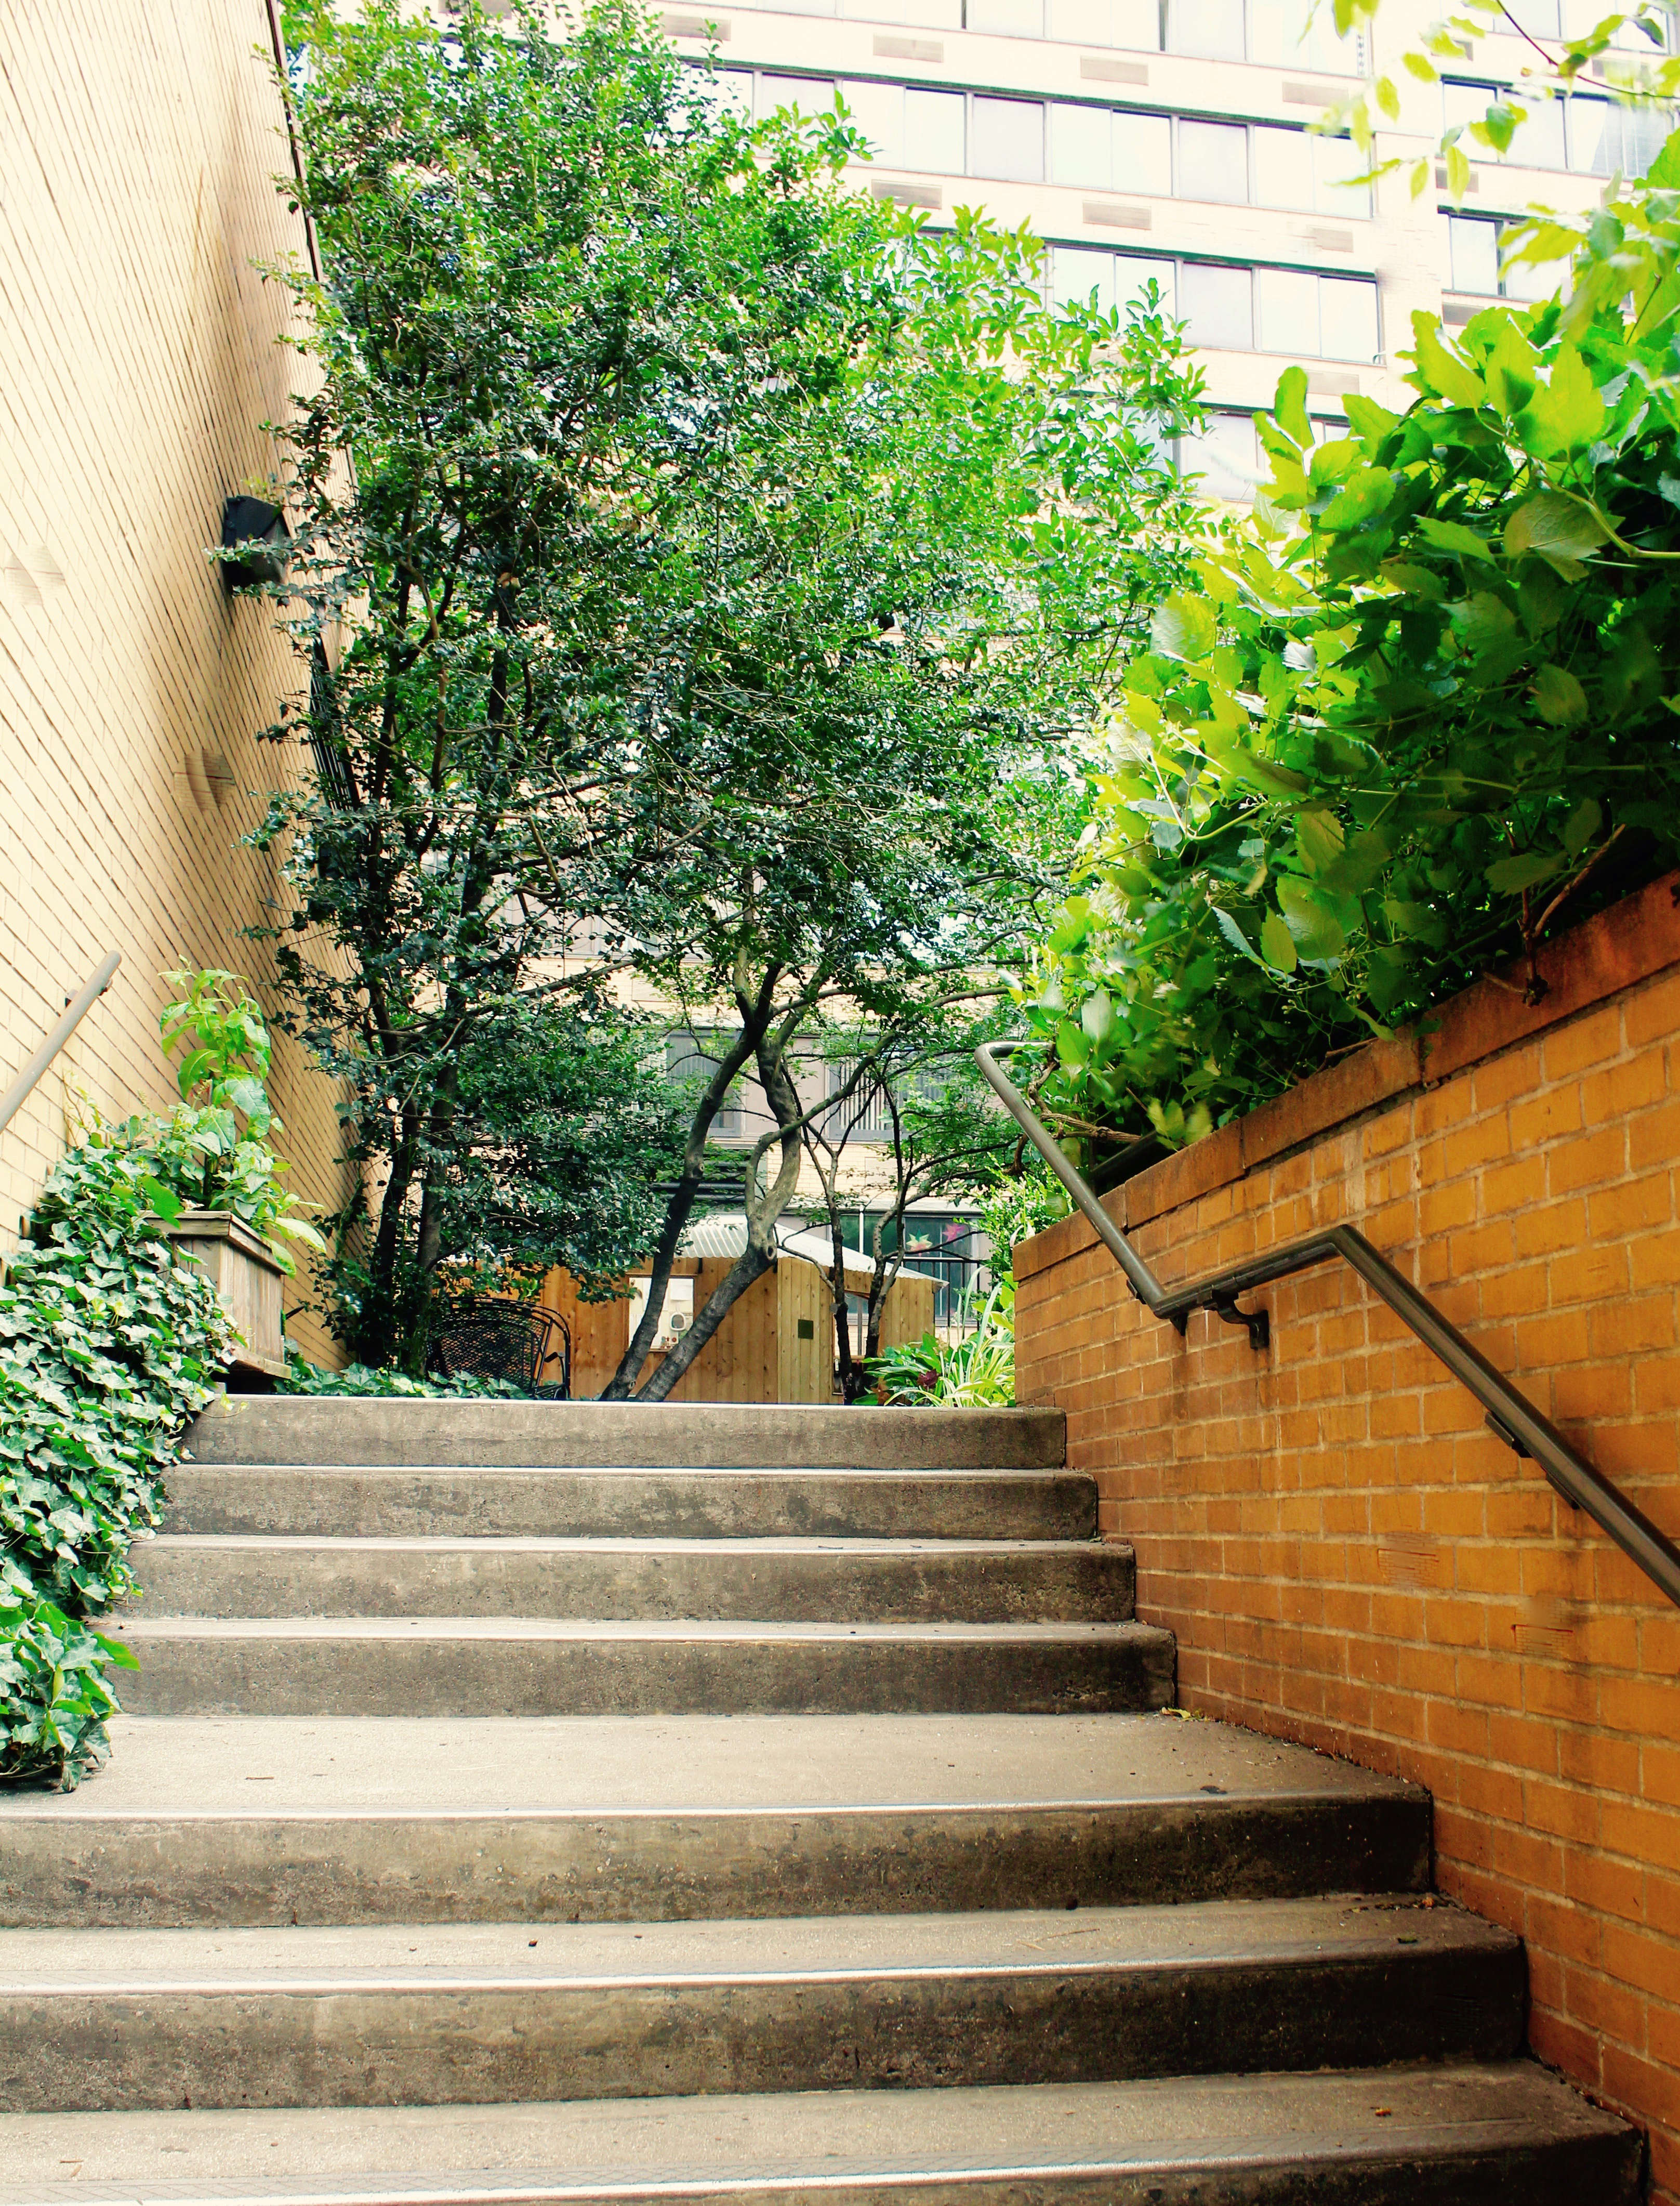 A cement staircase leads to the Lotus Garden, which is open to the public every Sunday from April to November, from \1 to 4 p.m. Many neighborhood residents, however, lease keys, coming and going as they please during daylight hours.